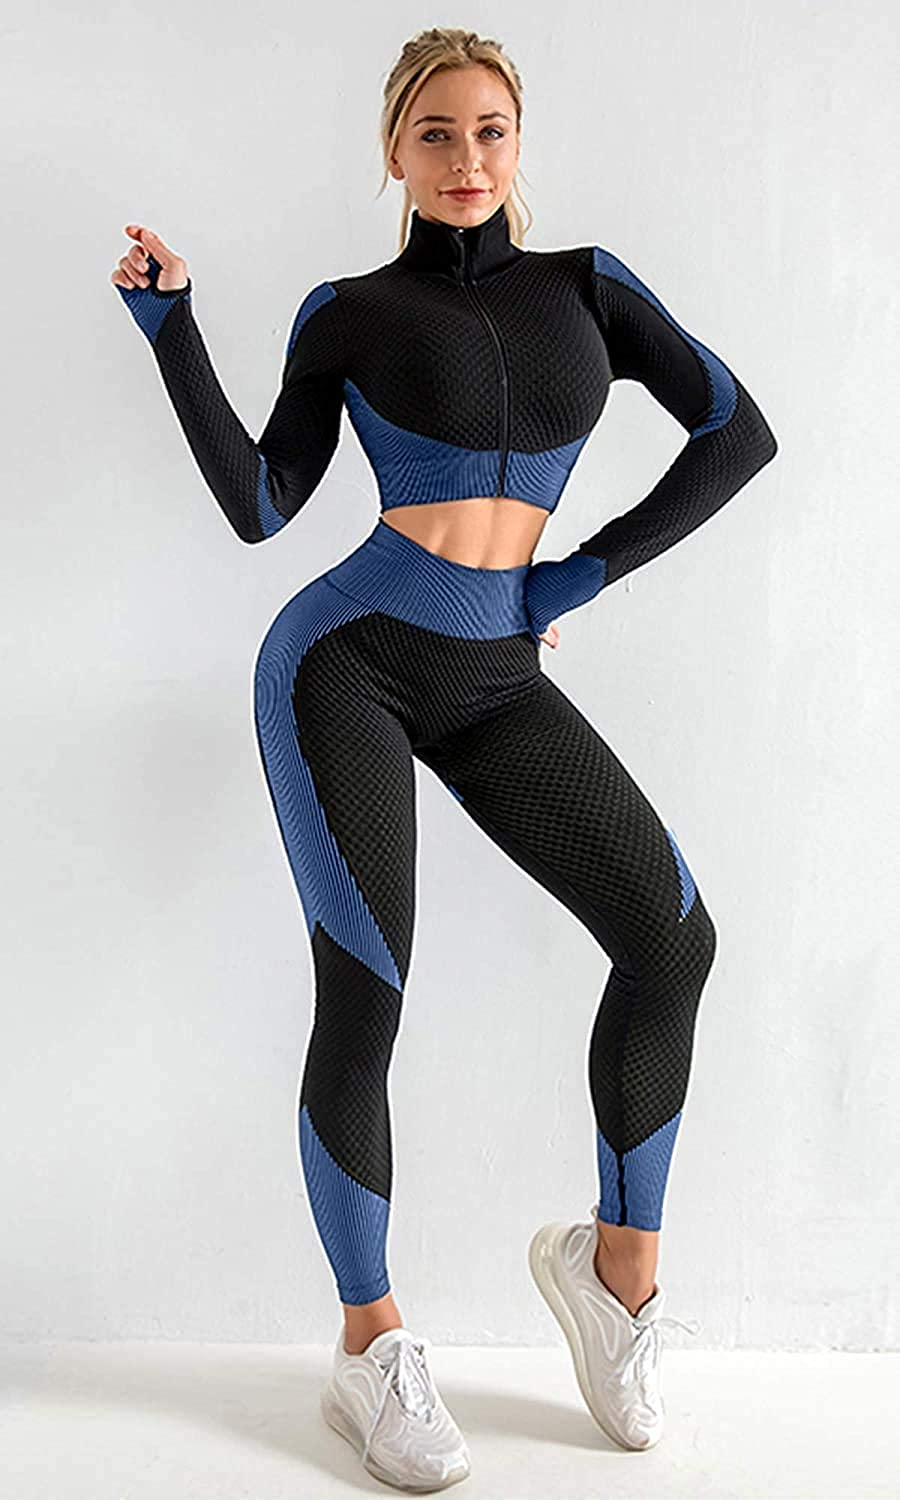 Womens Yoga Clothes 2 Piece Tracksuit Outfits Seamless High Waist Leggings and Long Sleeve Crop Top Yoga Sweatsuit Set for Workout at Home